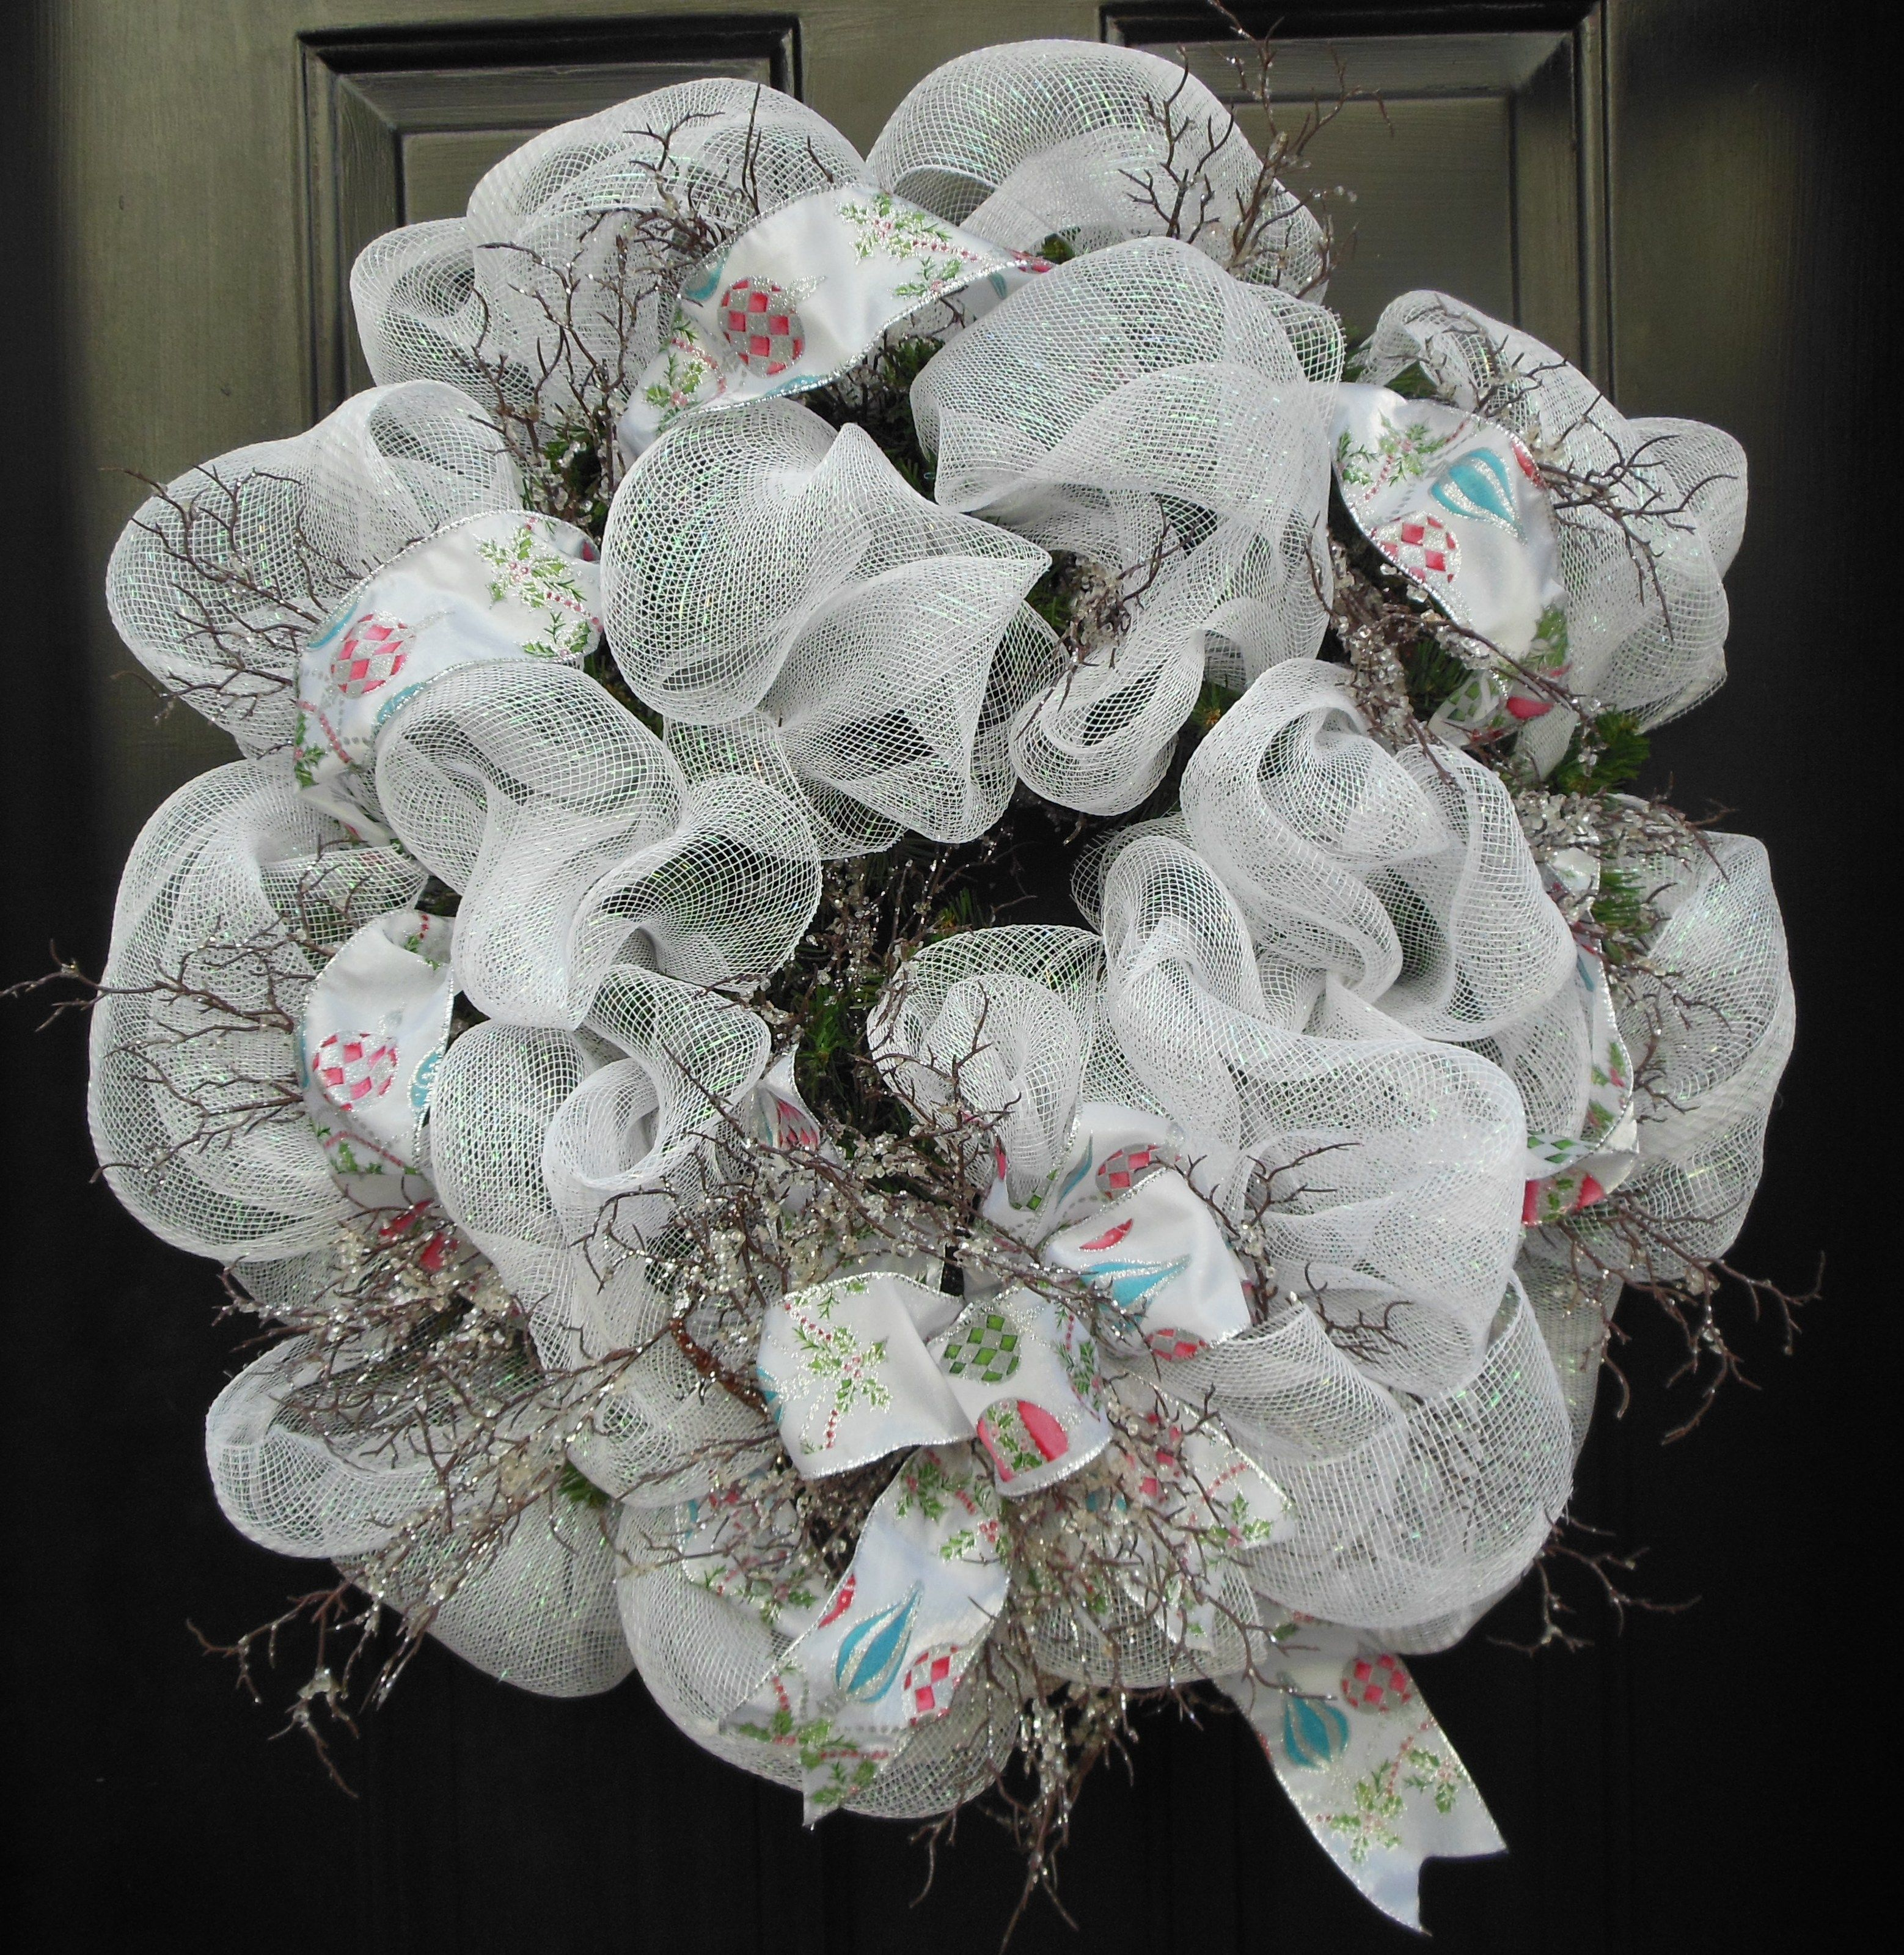 Frosty White Deco Mesh Christmas Wreath with Frosted Twig Embellishments